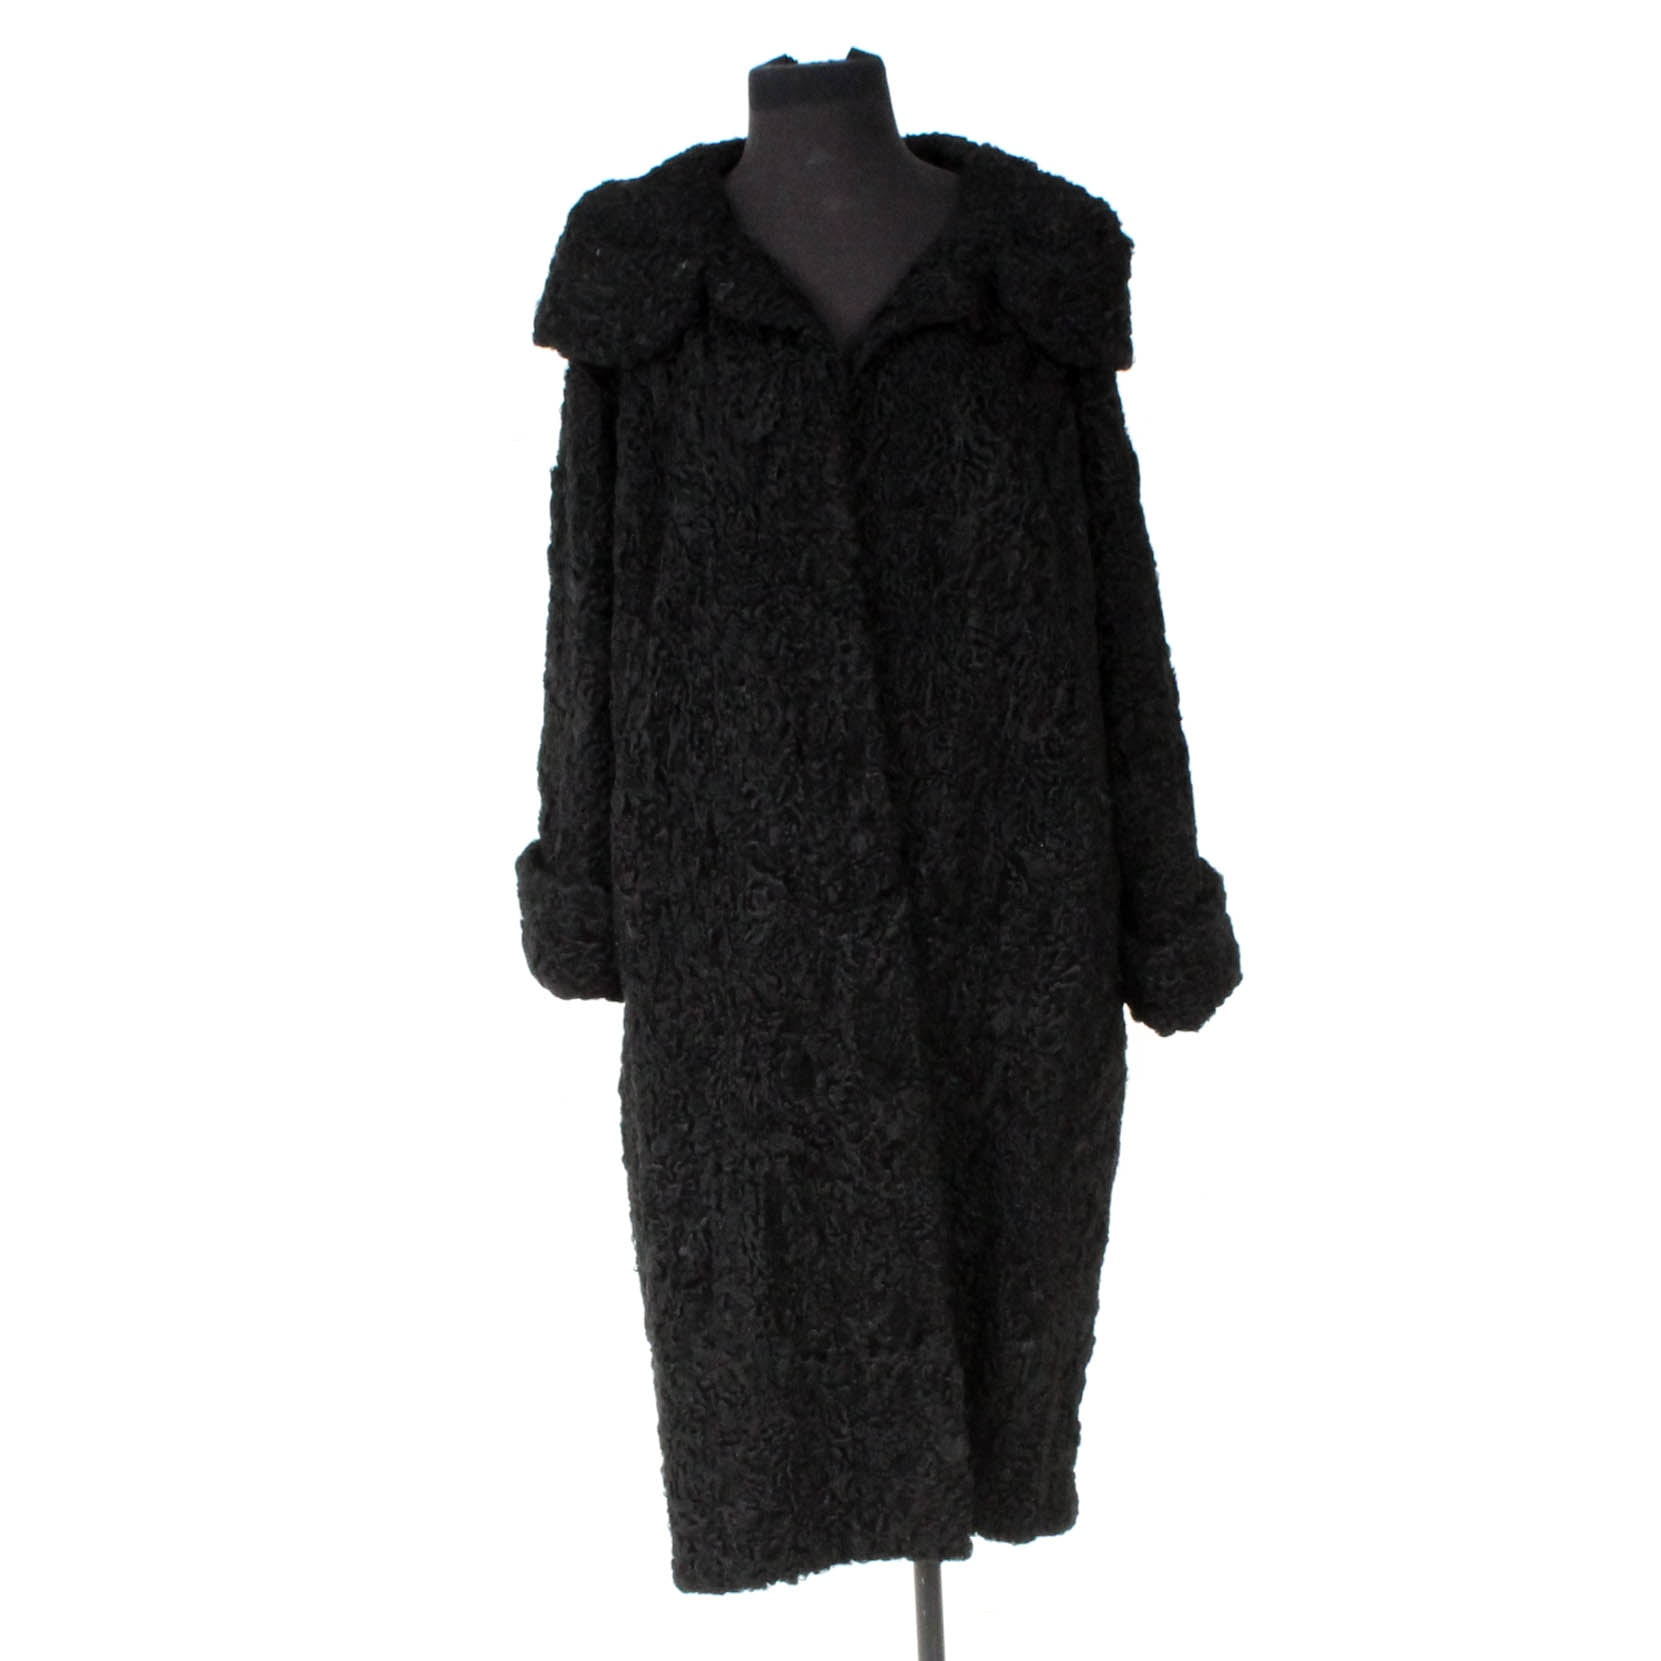 Vintage T. Galistino's Black Persian Lamb Fur Coat